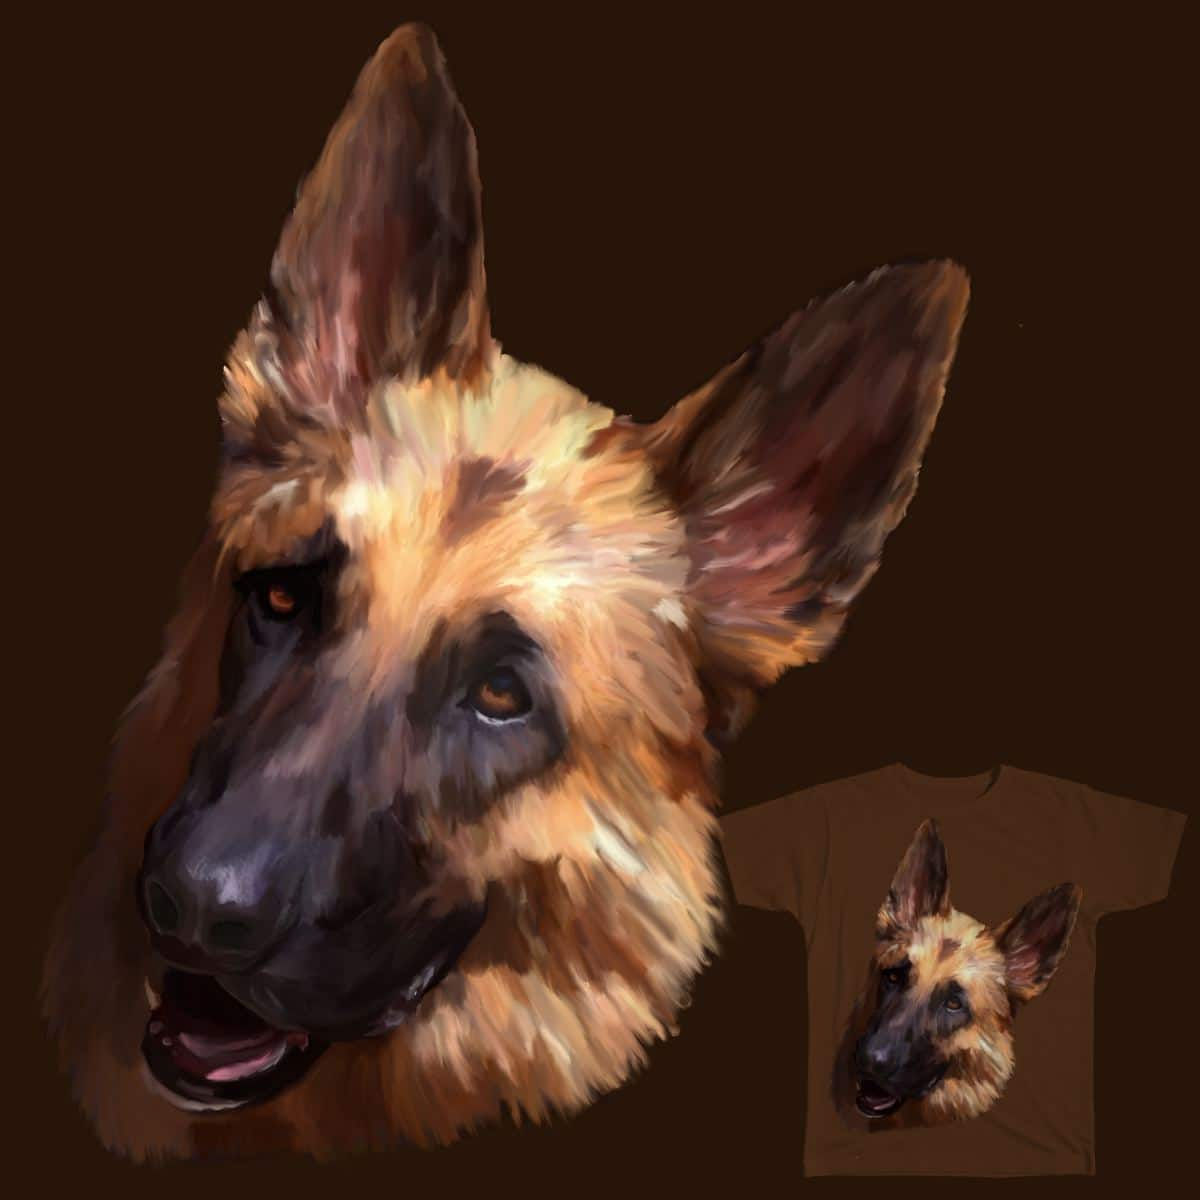 German Shepherd by Gottheart on Threadless